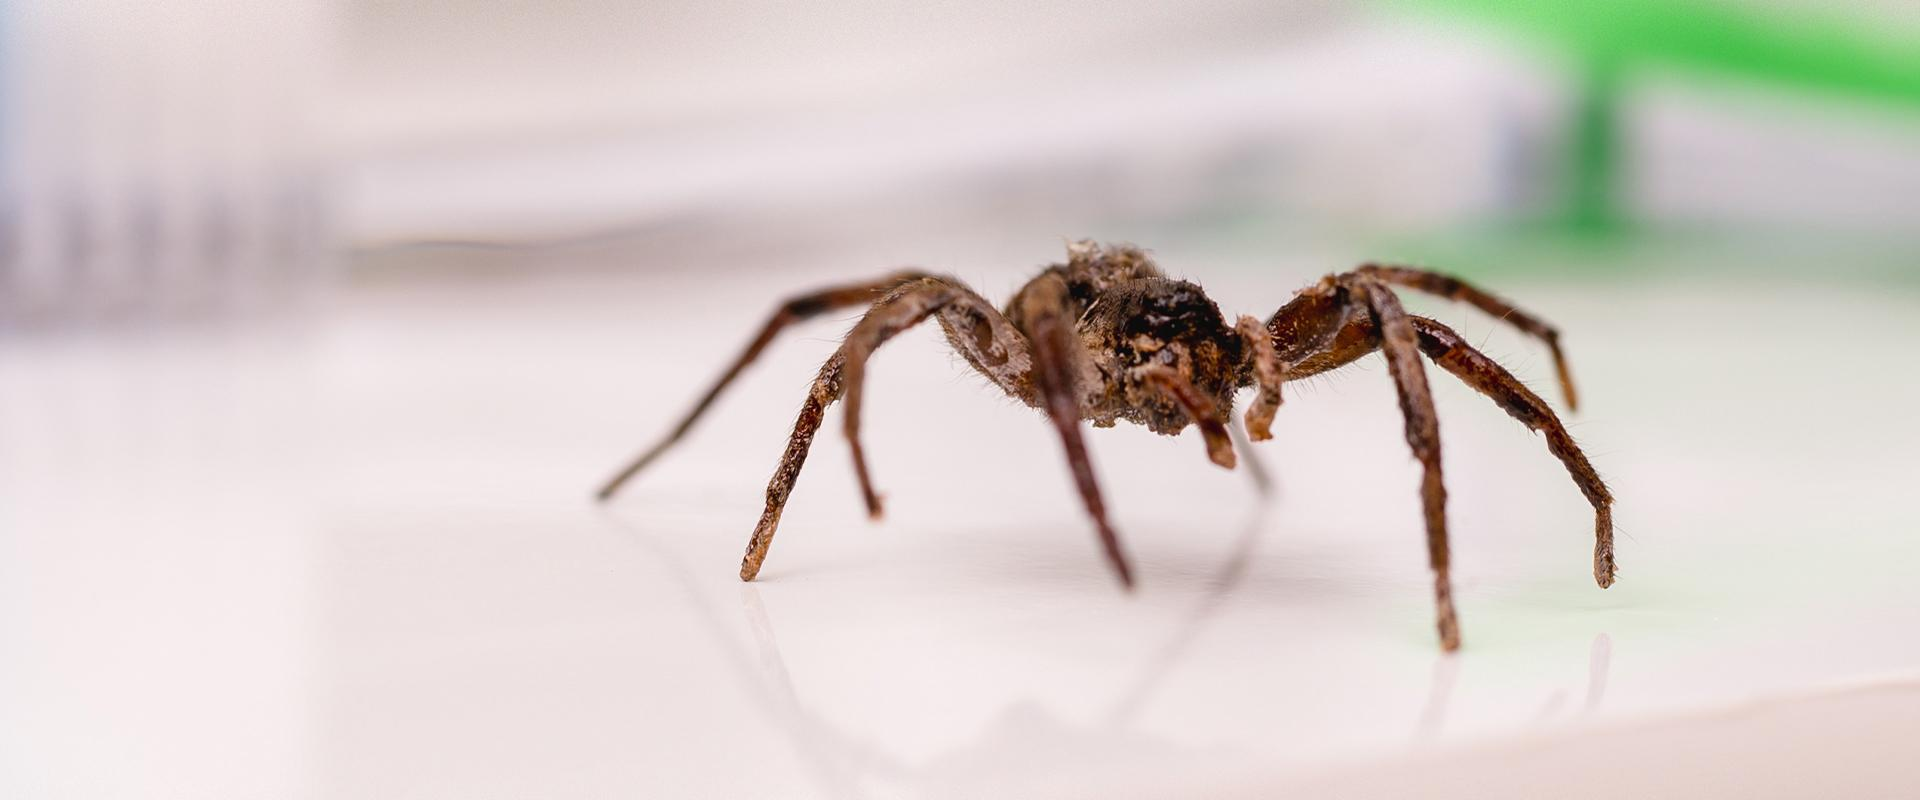 spider on a counter